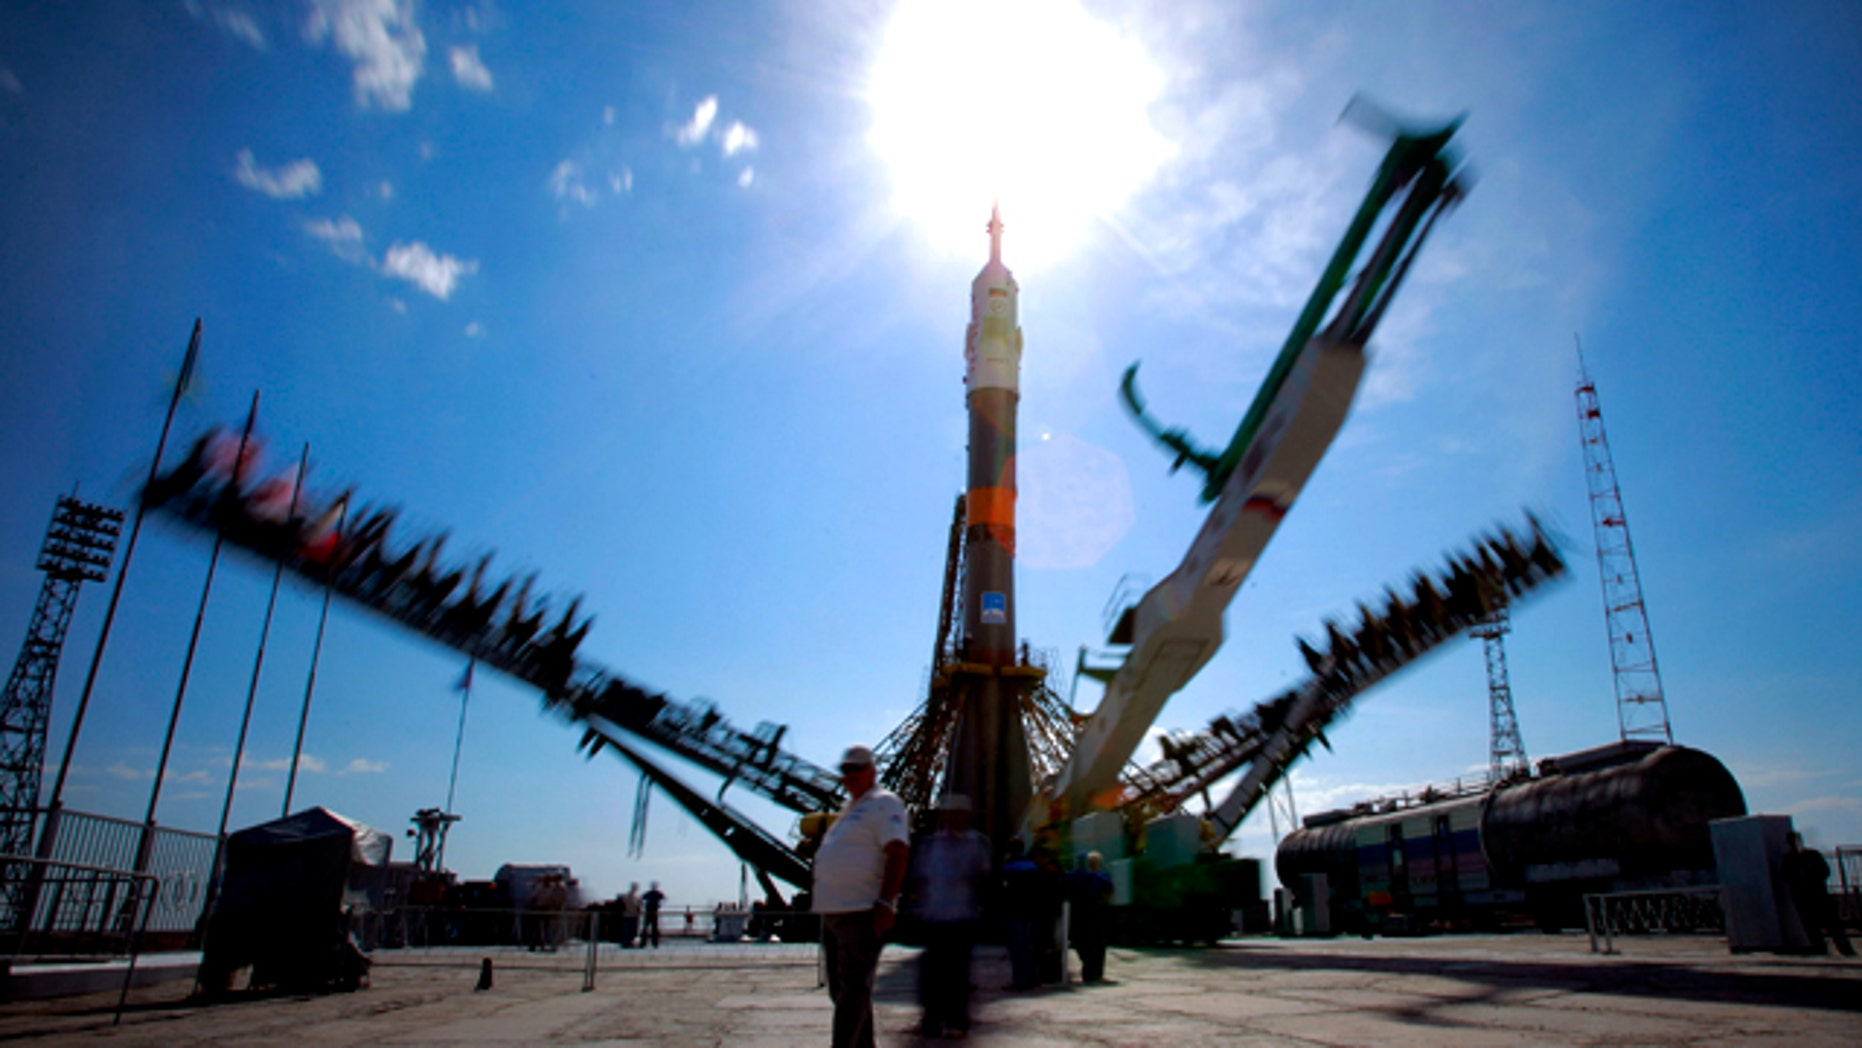 June 5, 2011: Service towers lift to the Russian Soyuz TMA-02M space ship that will carry new crew to the International Space Station, ISS,  at the launch pad at the Russian leased Baikonur cosmodrome, Kazakhstan. The start of the new Soyuz mission to the International Space Station is scheduled on Wednesday, June 8.